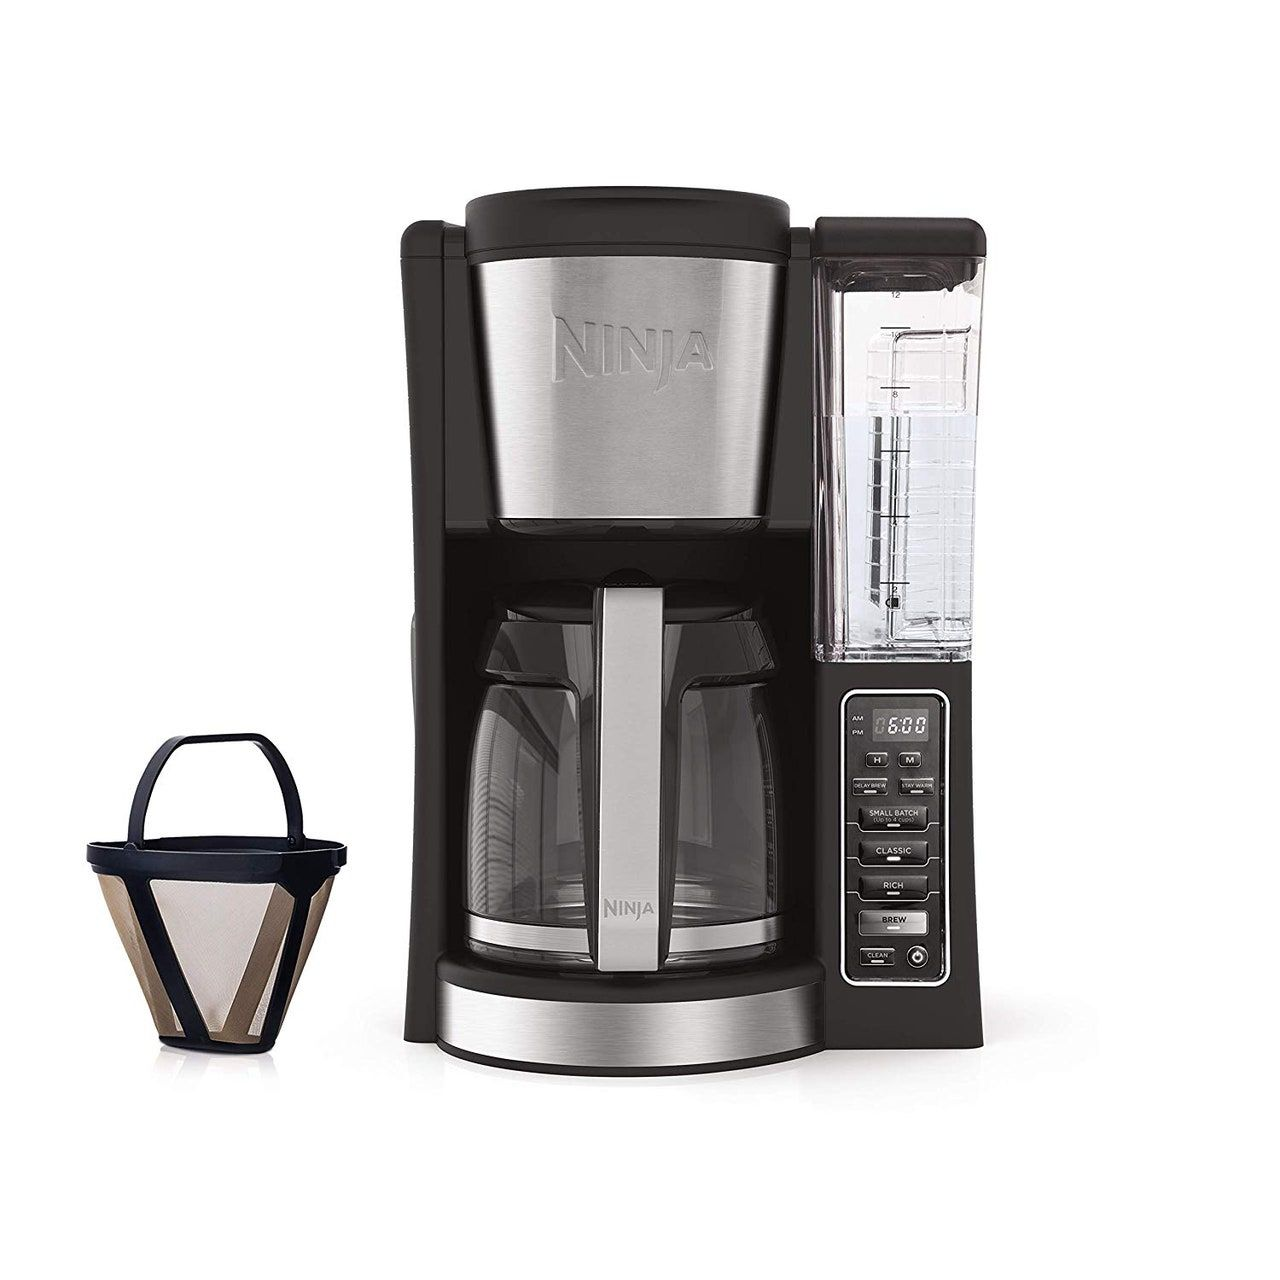 Best drip coffee makers of 2020 reviewed oxo ninja and